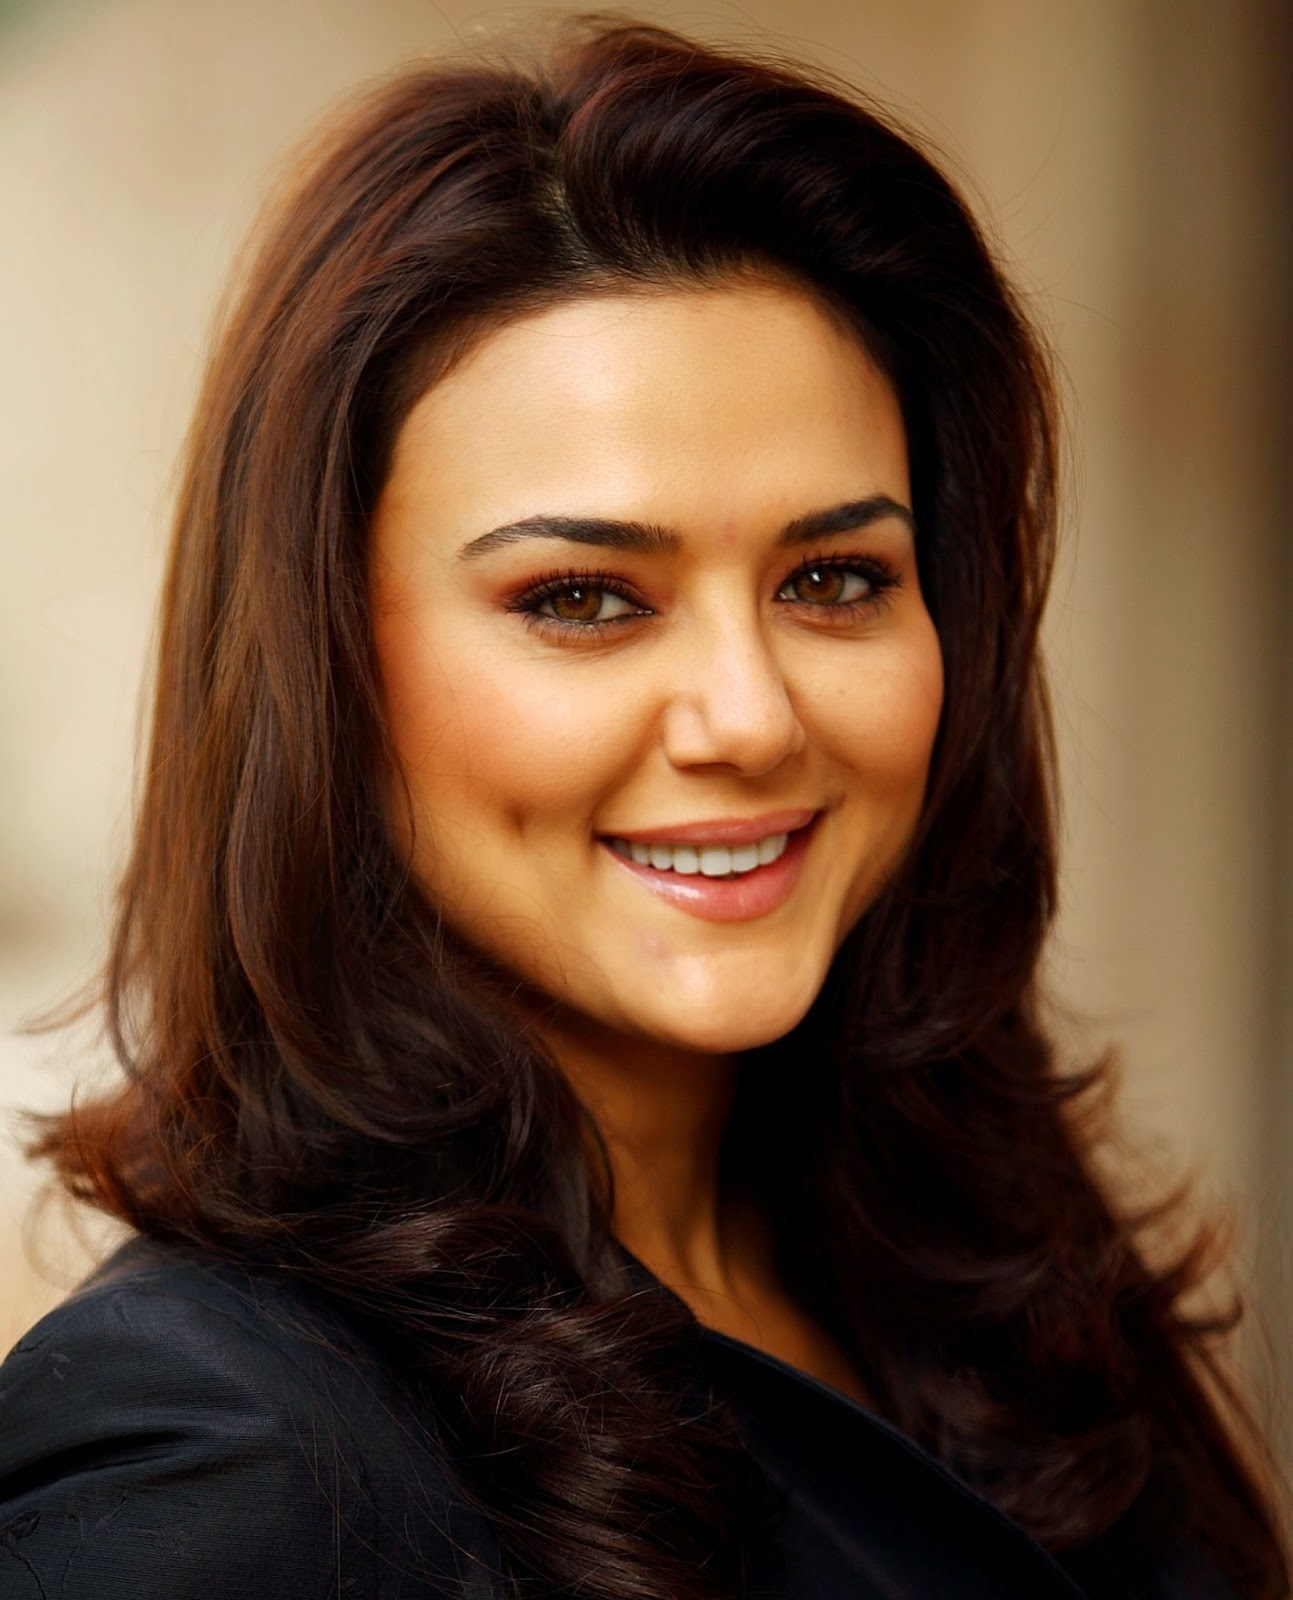 Hd Wallpaper Of Beautiful Indian Girl Preity Zinta Hd Wallpapers Free Download Bollywood Hd